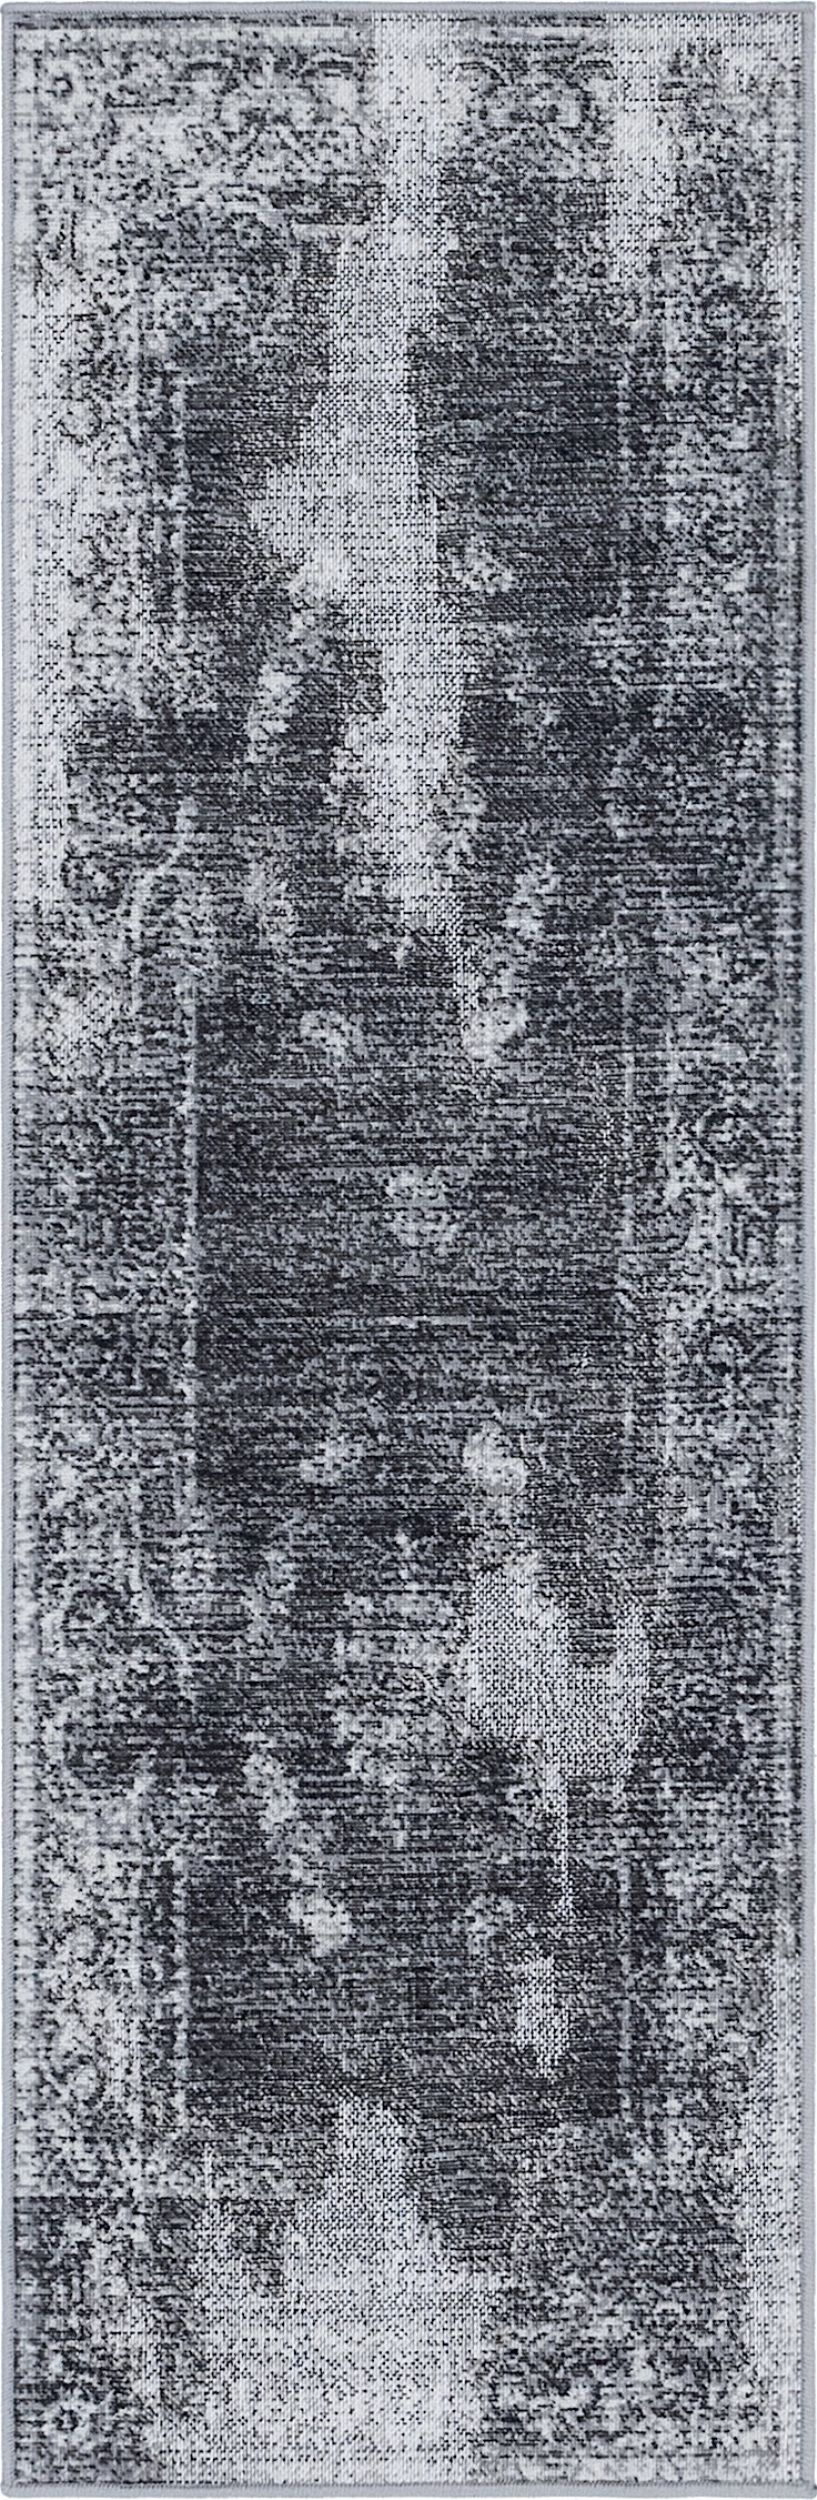 rugpal belle transitional area rug collection